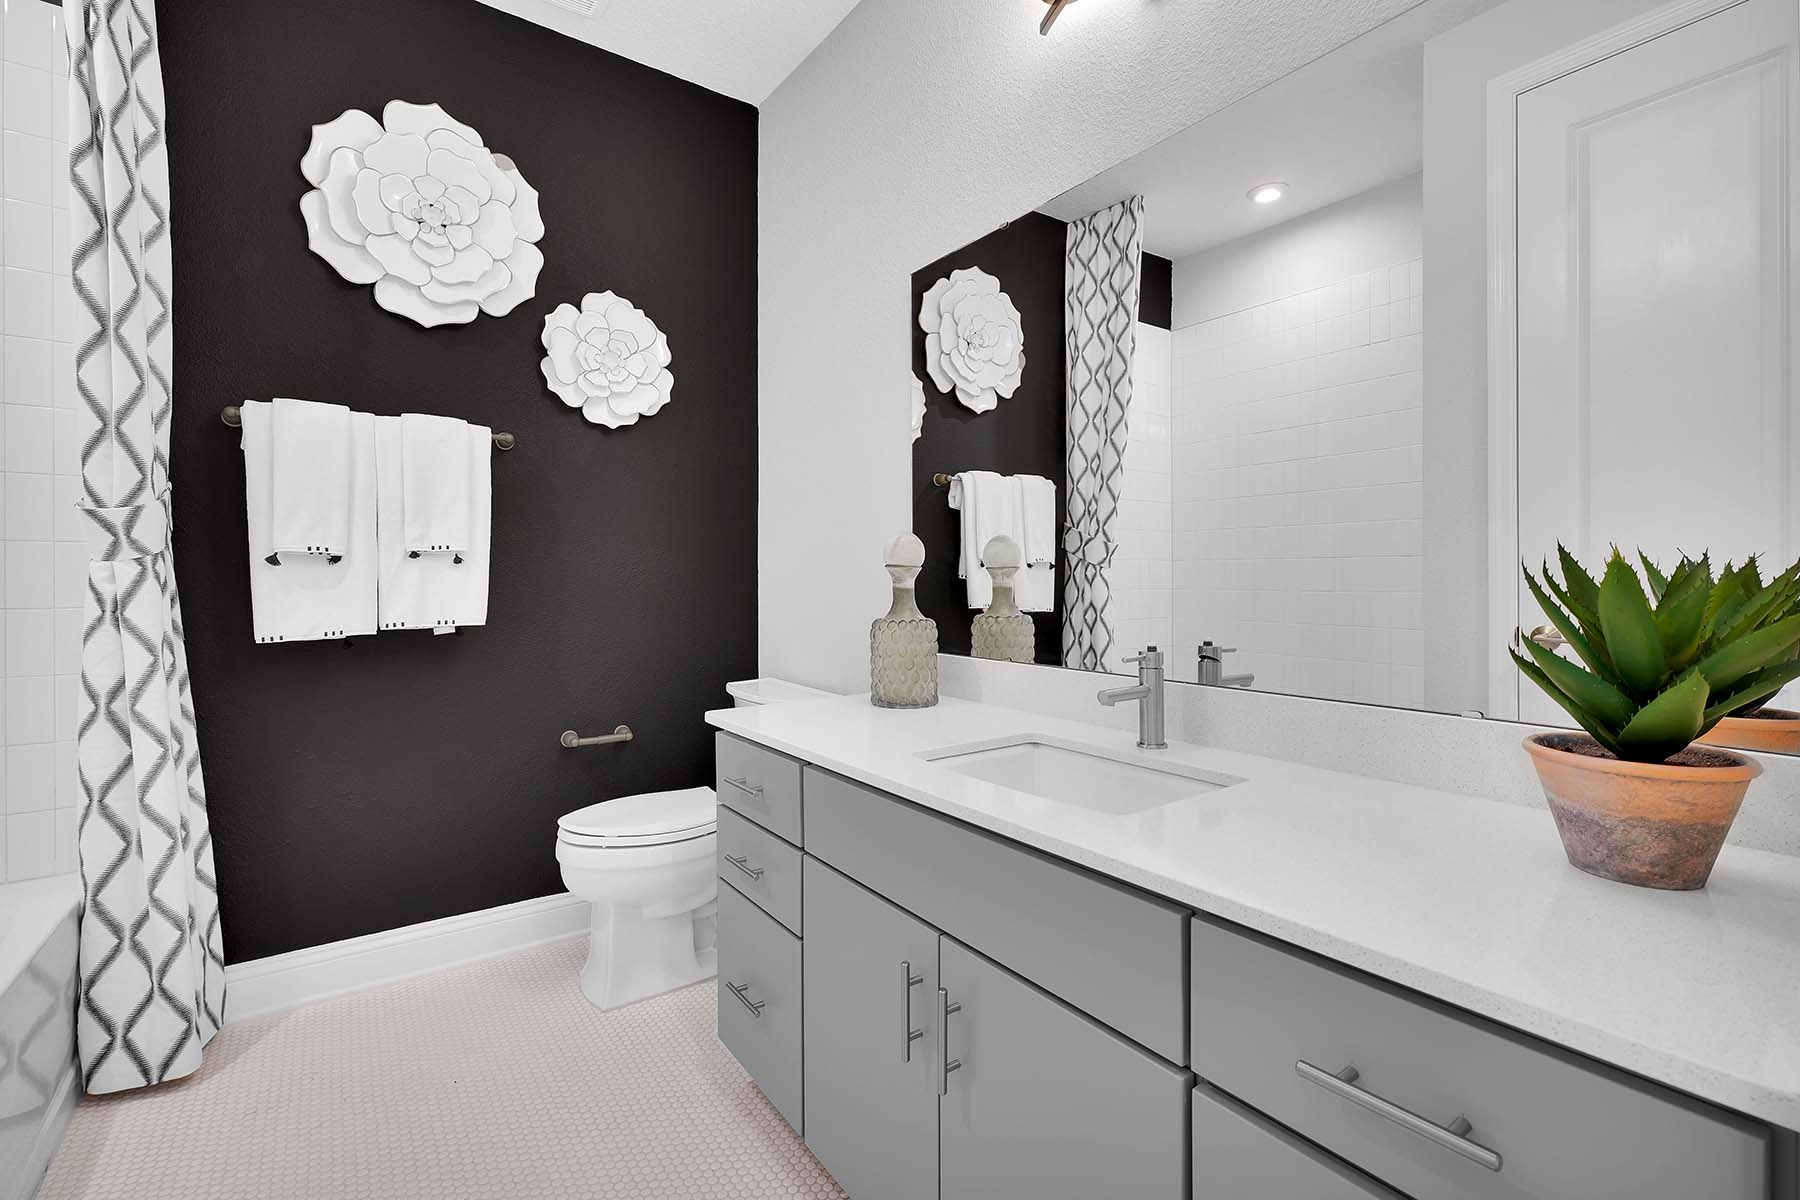 Waverly Plan Bath at Pablo Cove in Jacksonville Florida by Mattamy Homes